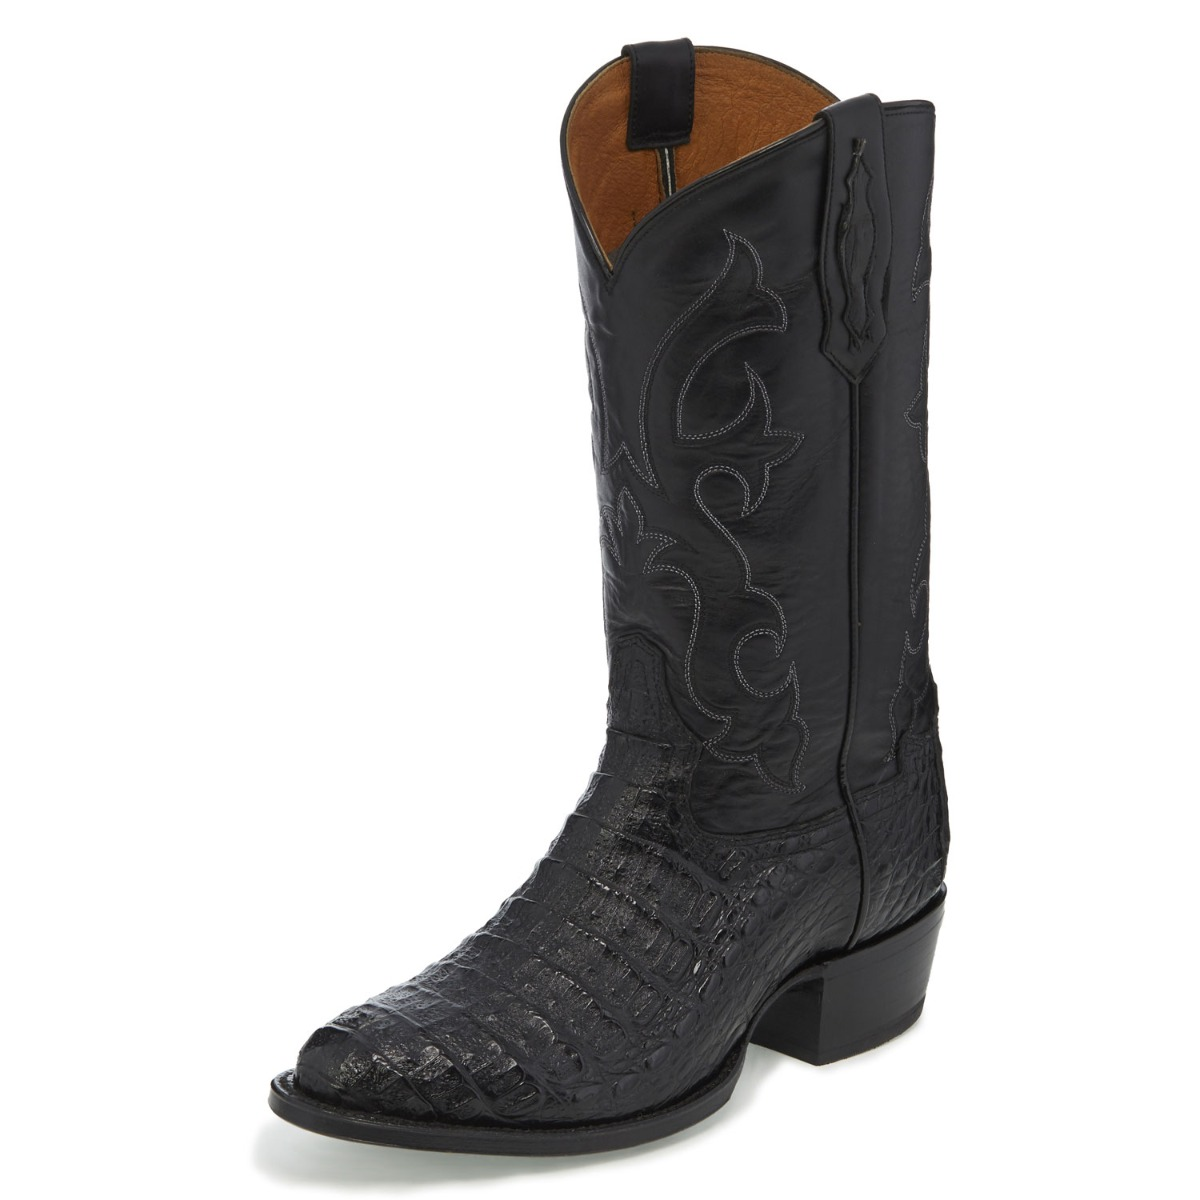 TONY LAMA MEN'S BLACK HORNBACK CAIMAN CROCODILE MEDIUM ROUND TOE BOOTS